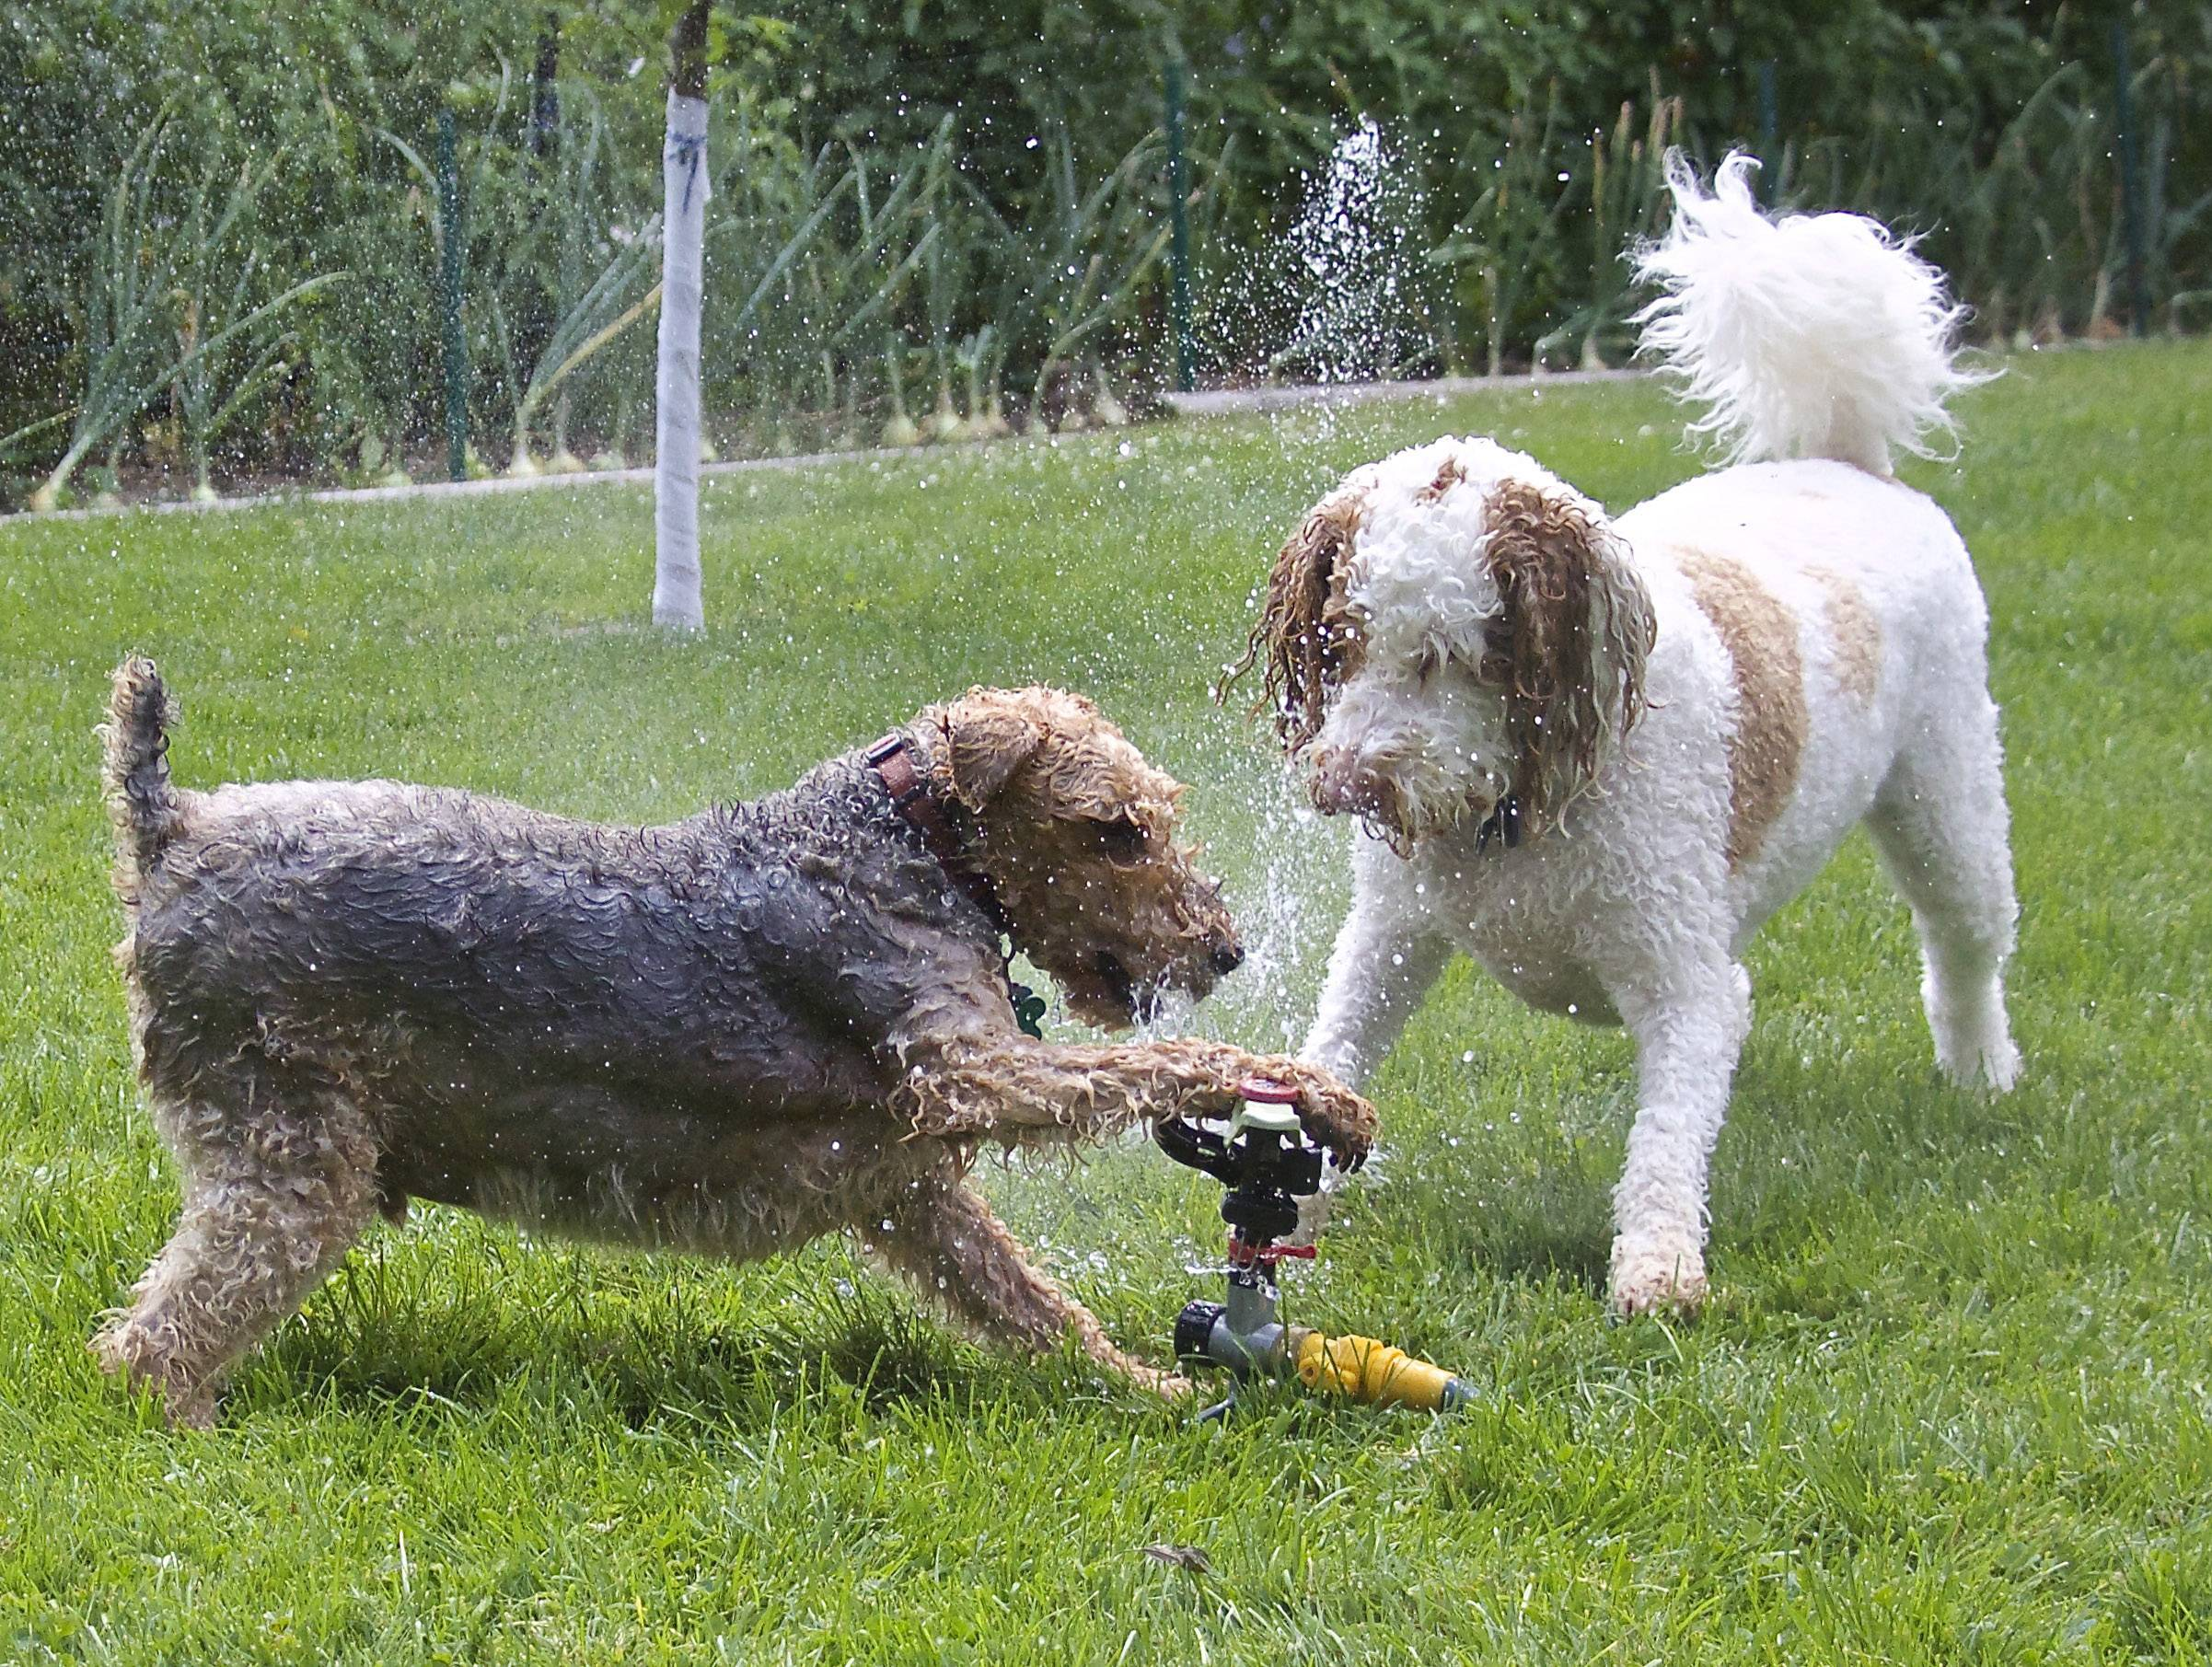 Two dogs, Winston and Jasper, play with a sprinkler while cooling off on a hot summer day.